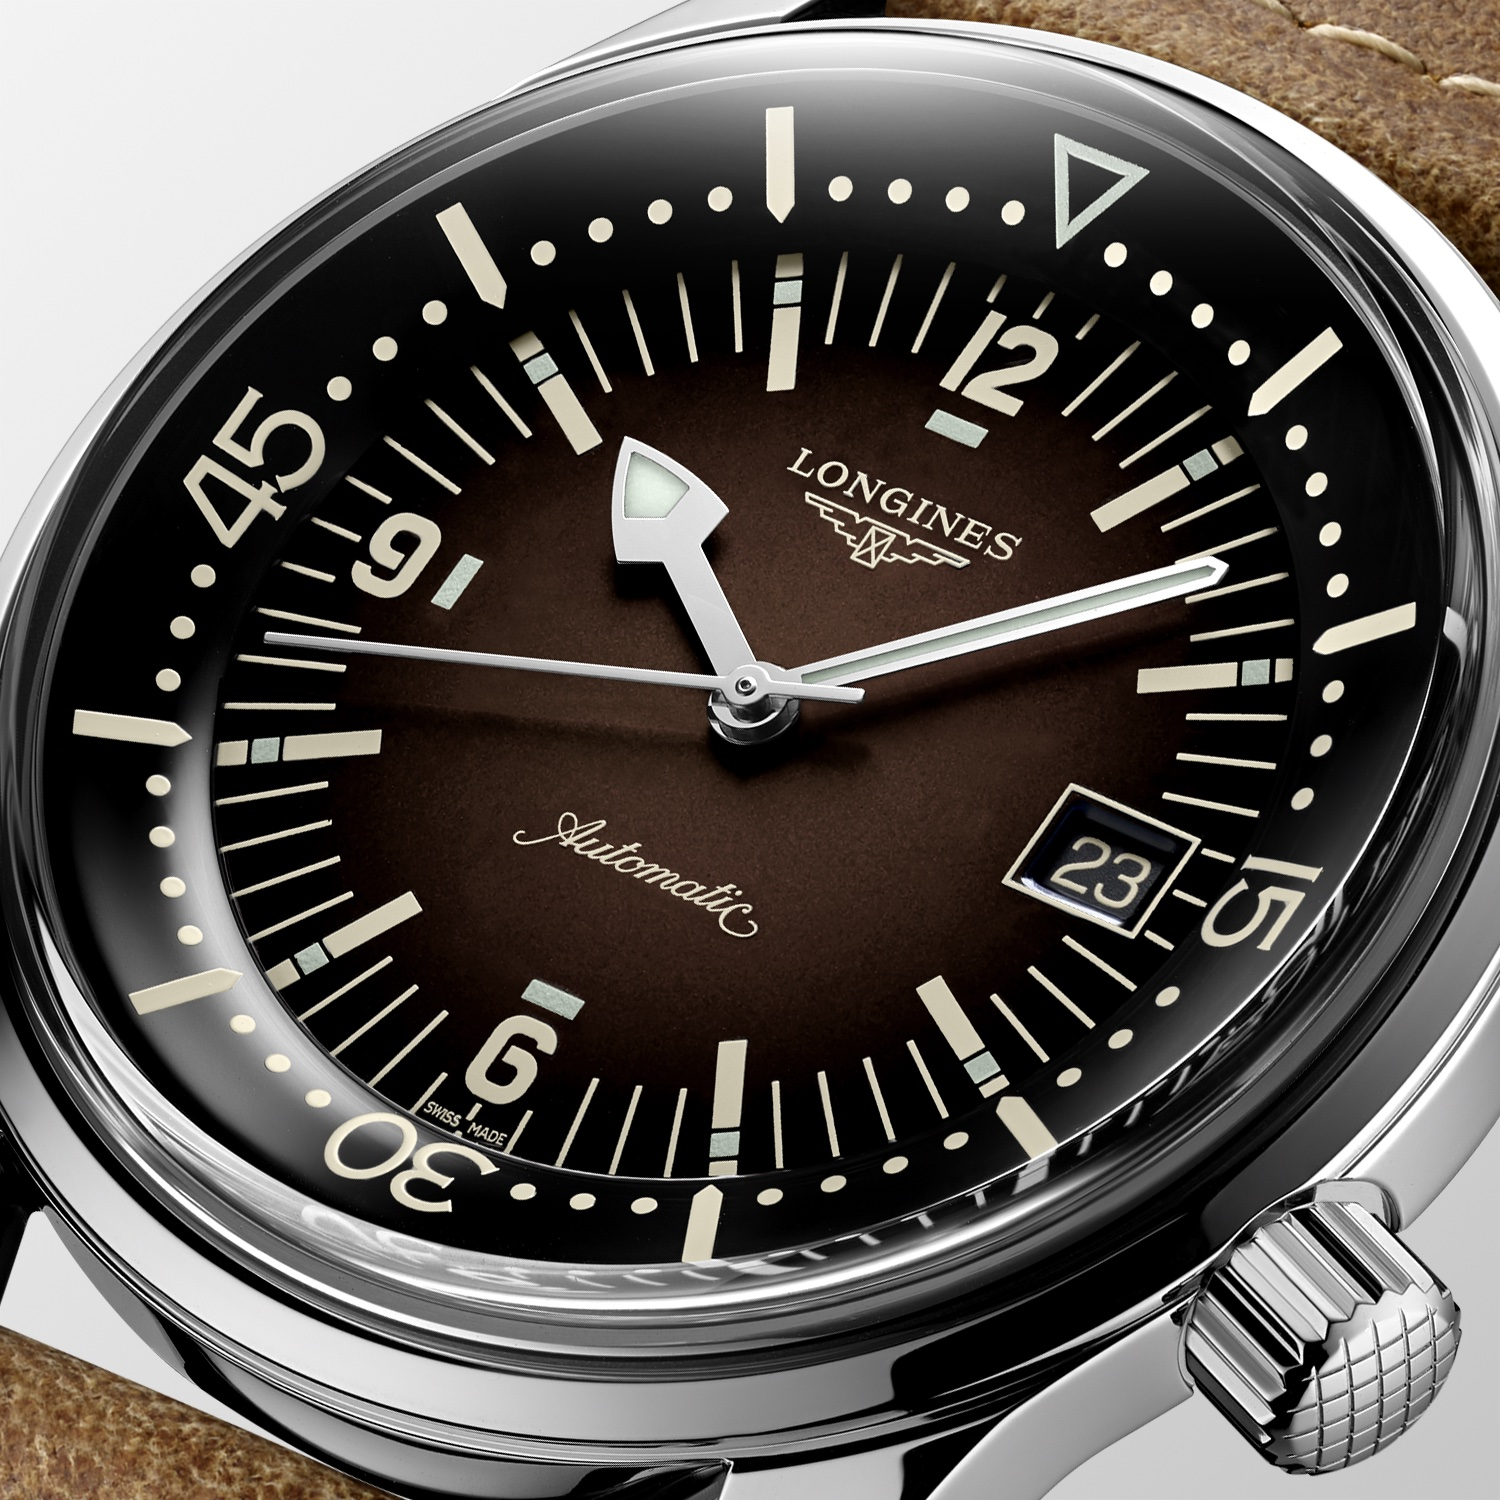 The Longines Legend Diver Watch Marrón L3.774.4.60.2 Detalle Esfera